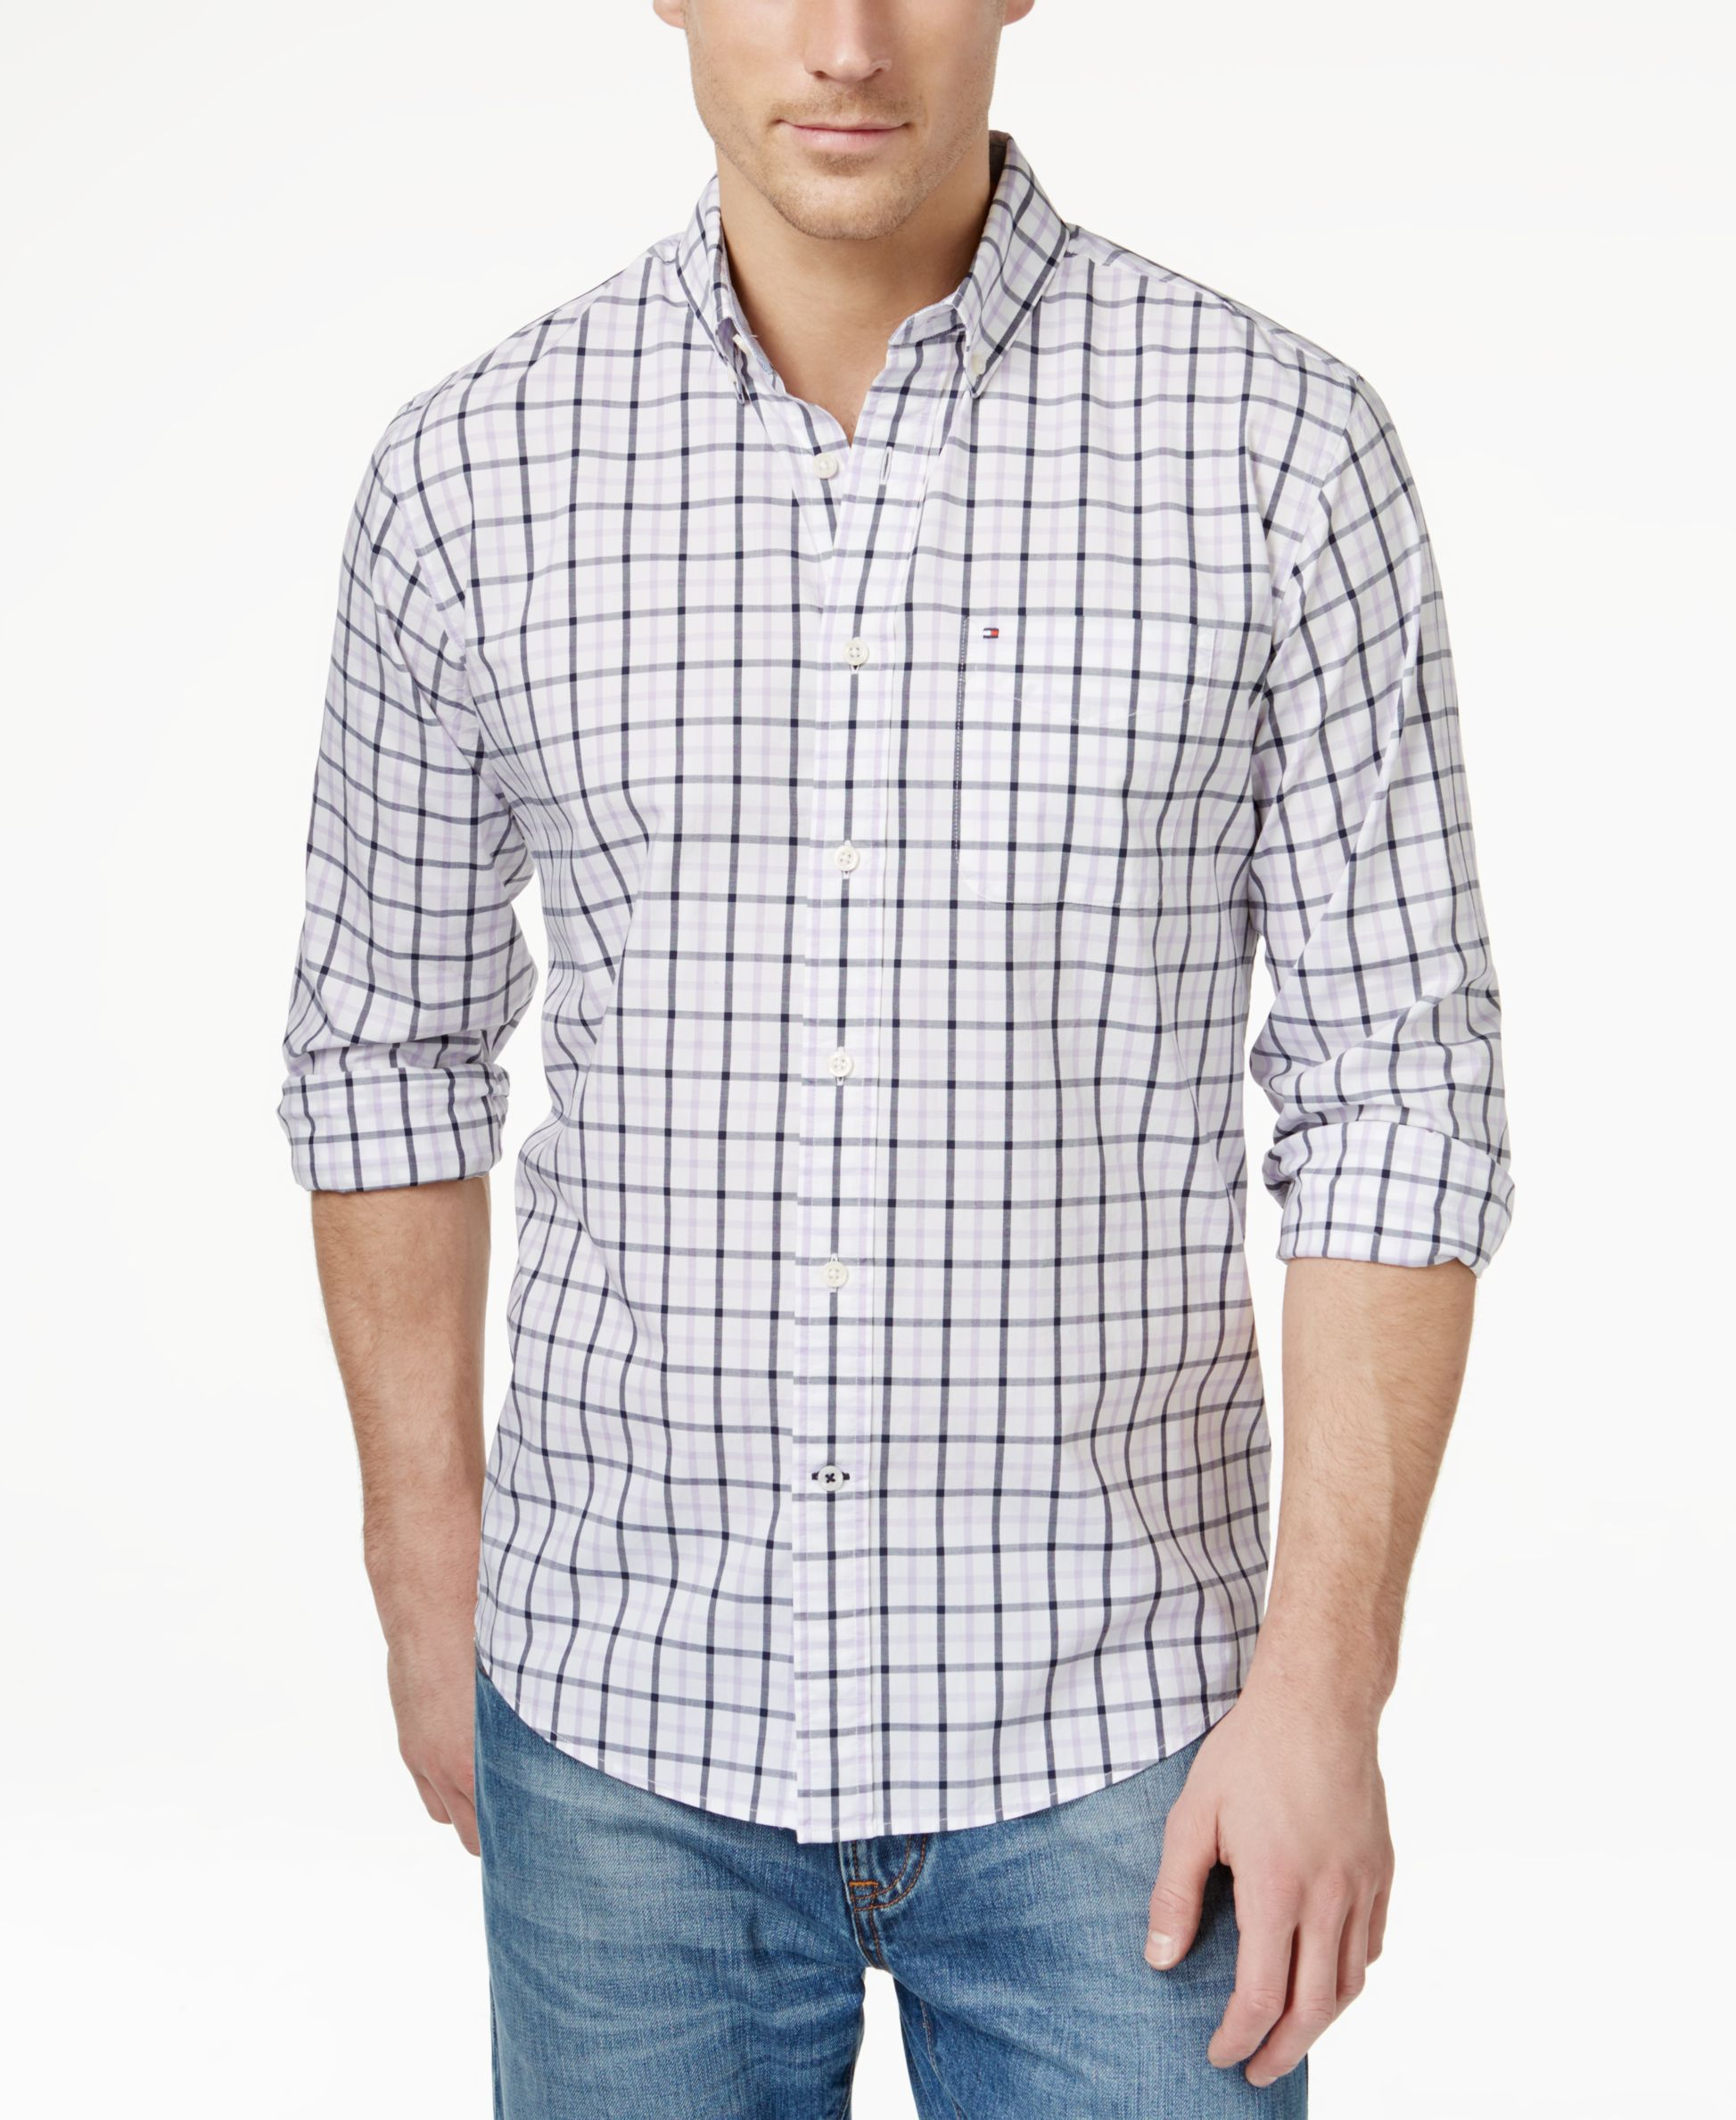 Flannel shirt trend  Tommy Hilfiger Baldwin Tattersall Plaid LongSleeve Shirt  Products